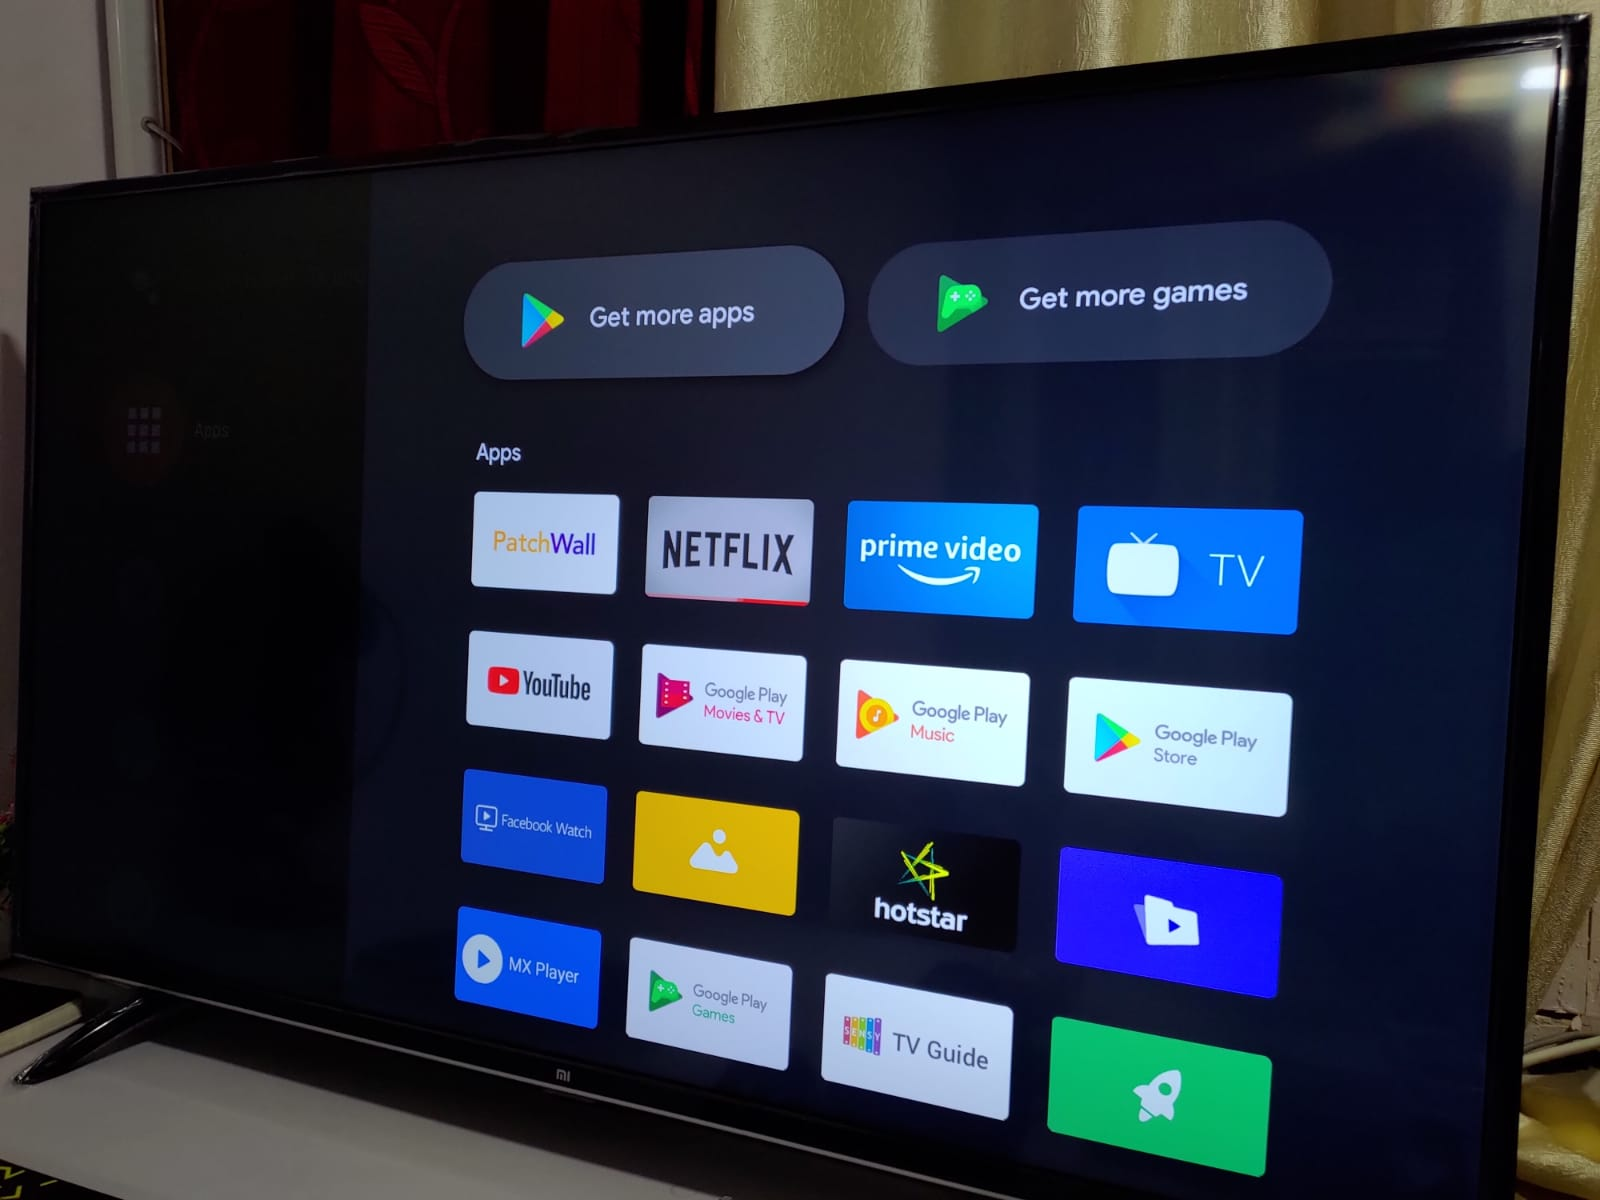 Play Store on Android TV